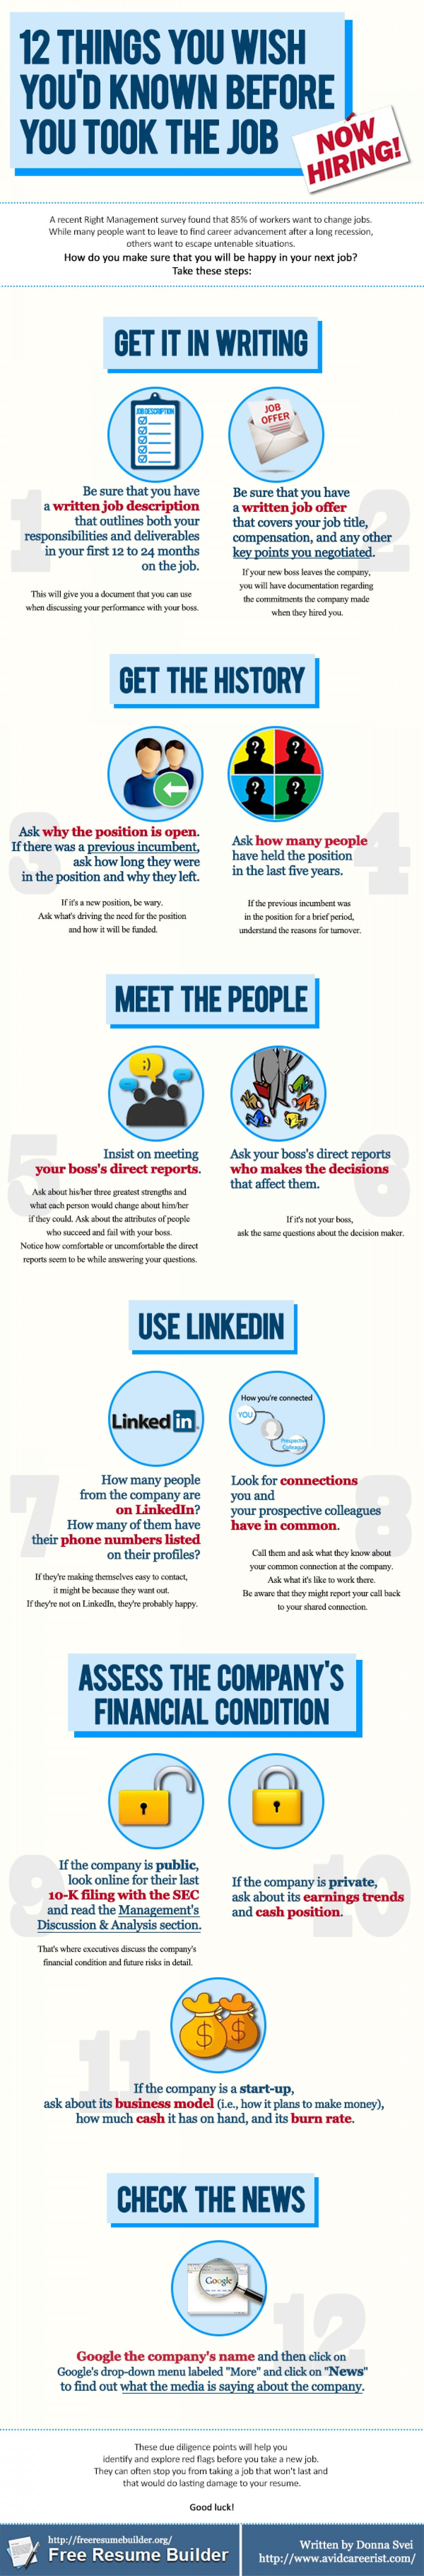 How To Make A Resume For A Job 12 Things You Wish You'd Known Before You Took That Job Infographic .